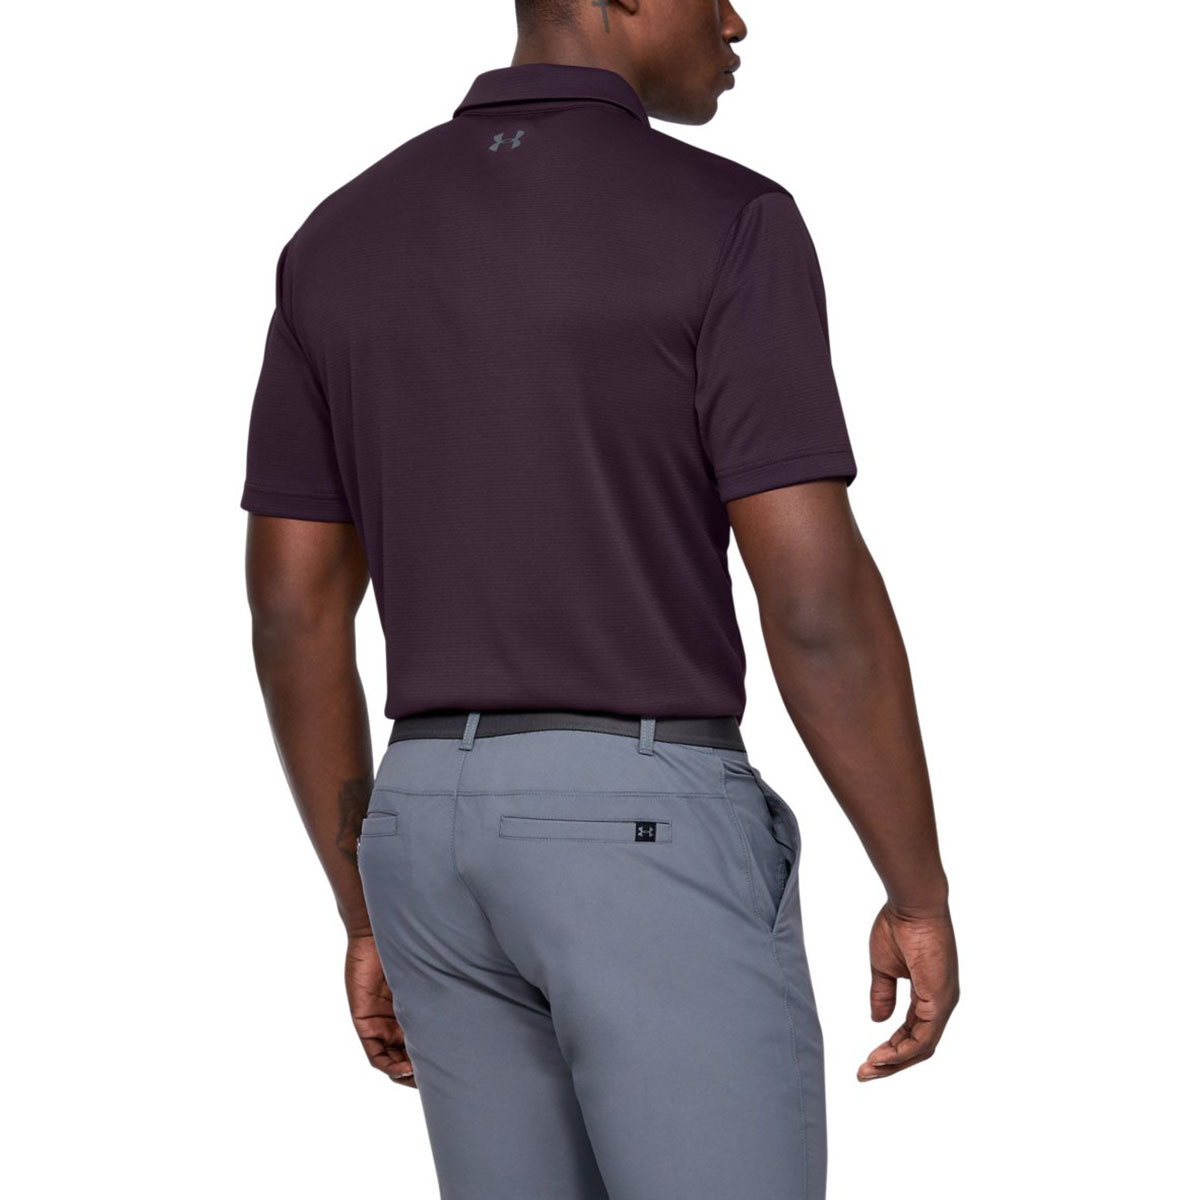 Under-Armour-Mens-Golf-Tech-Wicking-Textured-Soft-Light-Polo-Shirt thumbnail 41